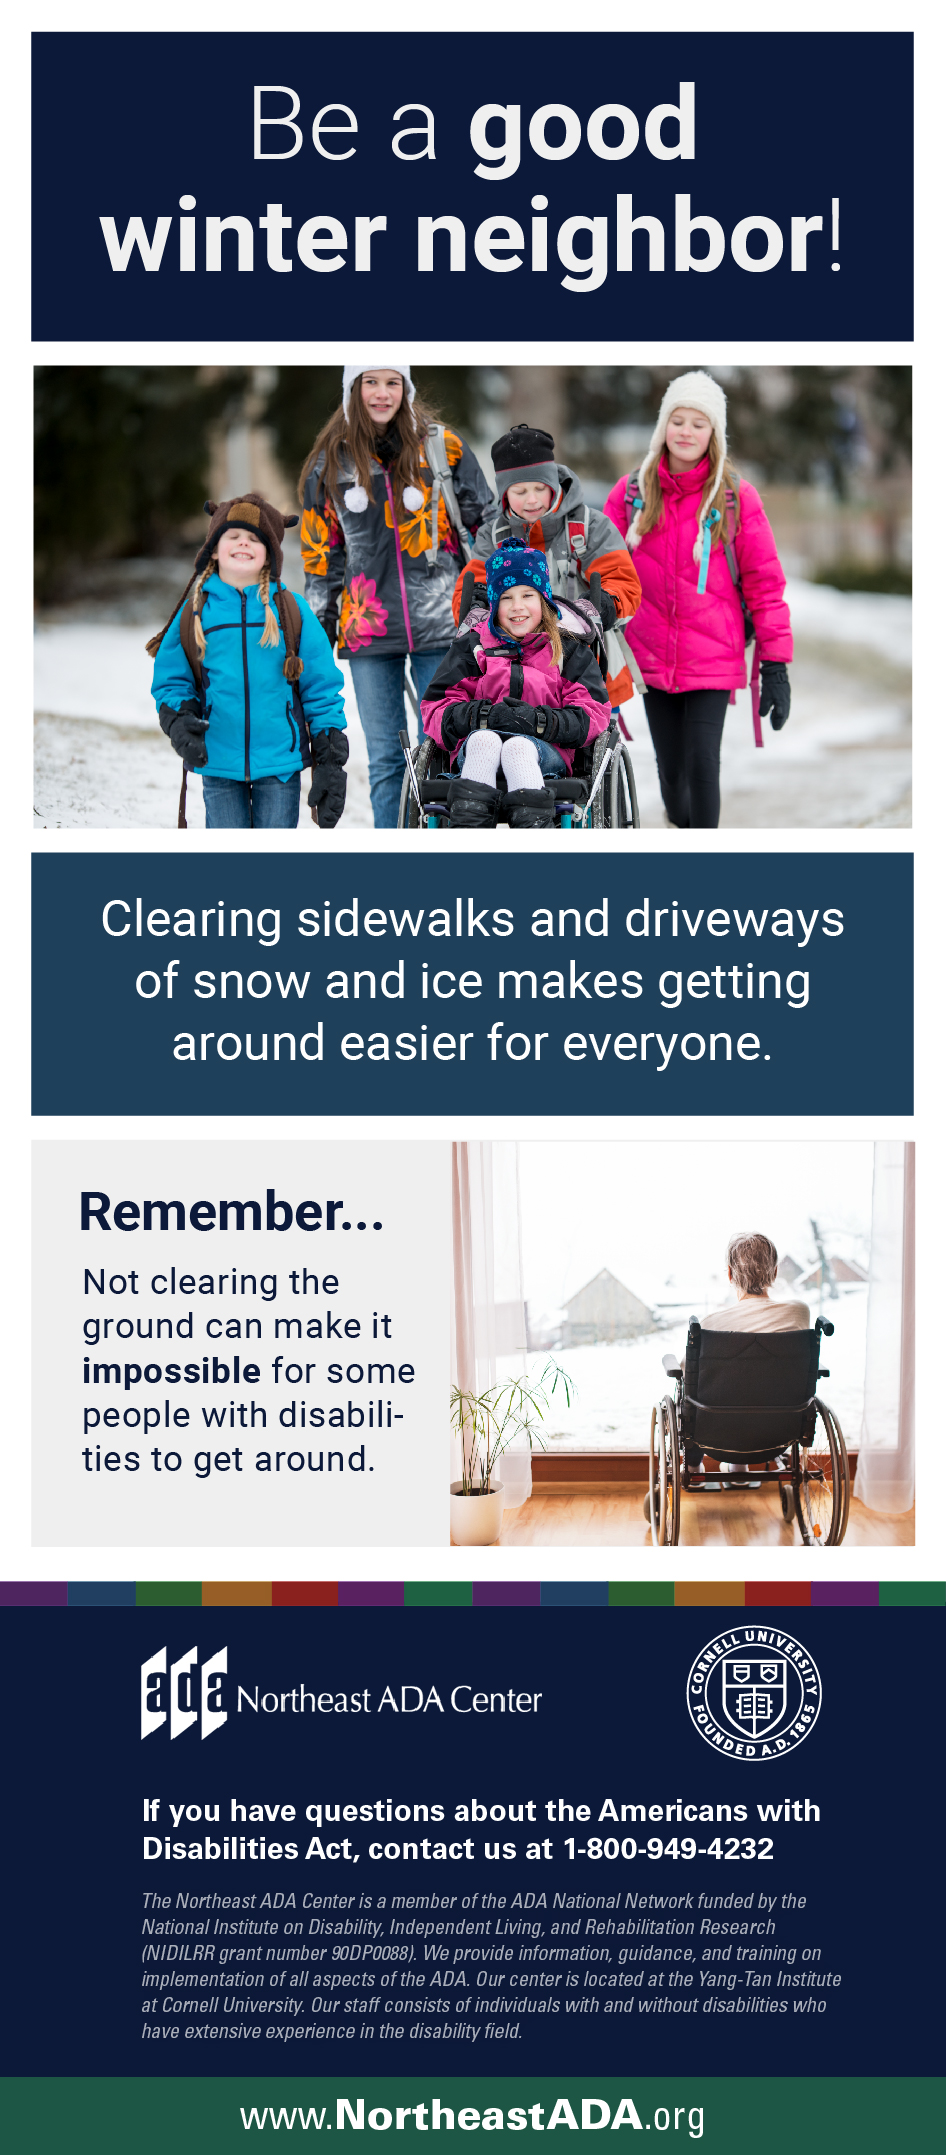 Infographic titled 'Be a good winter neighbor!' featuring kids smiling in the snow and a woman sitting in a wheelchair looking out the window at a wintery landscape. Clearing sidewalks and driveways of snow and ice makes getting around easier for everyone. Remember... Not clearing the ground can make it impossible for some people with disabilities to get around. If you have questions about the Americans with Disabilities Act, contact the Northeast ADA Center at 1-800-949-4232